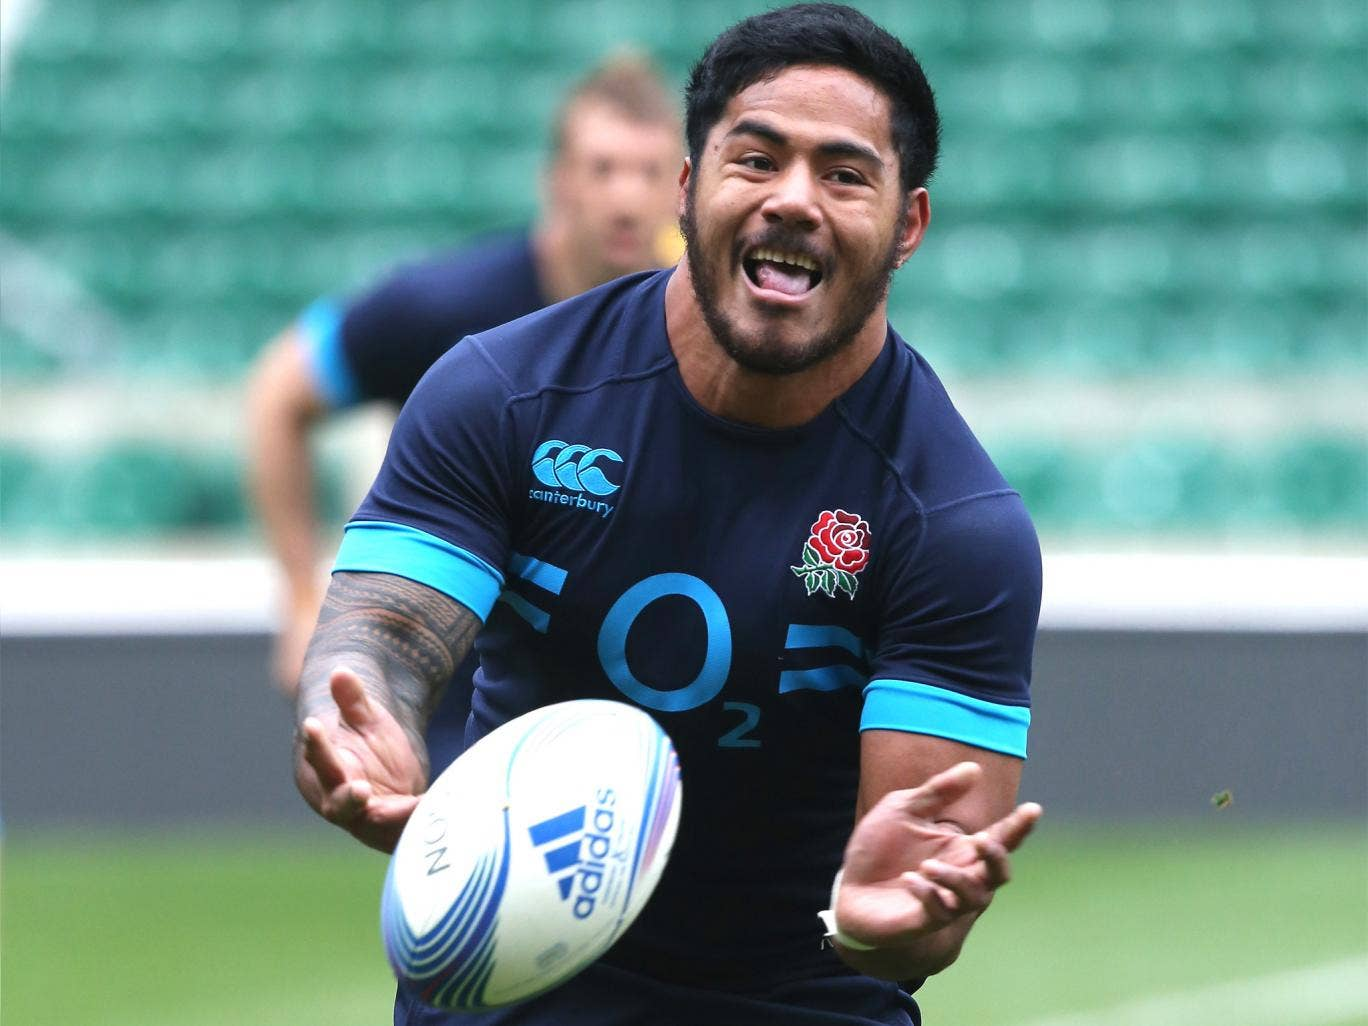 Manu Tuilagi has returned to the England squad after injury